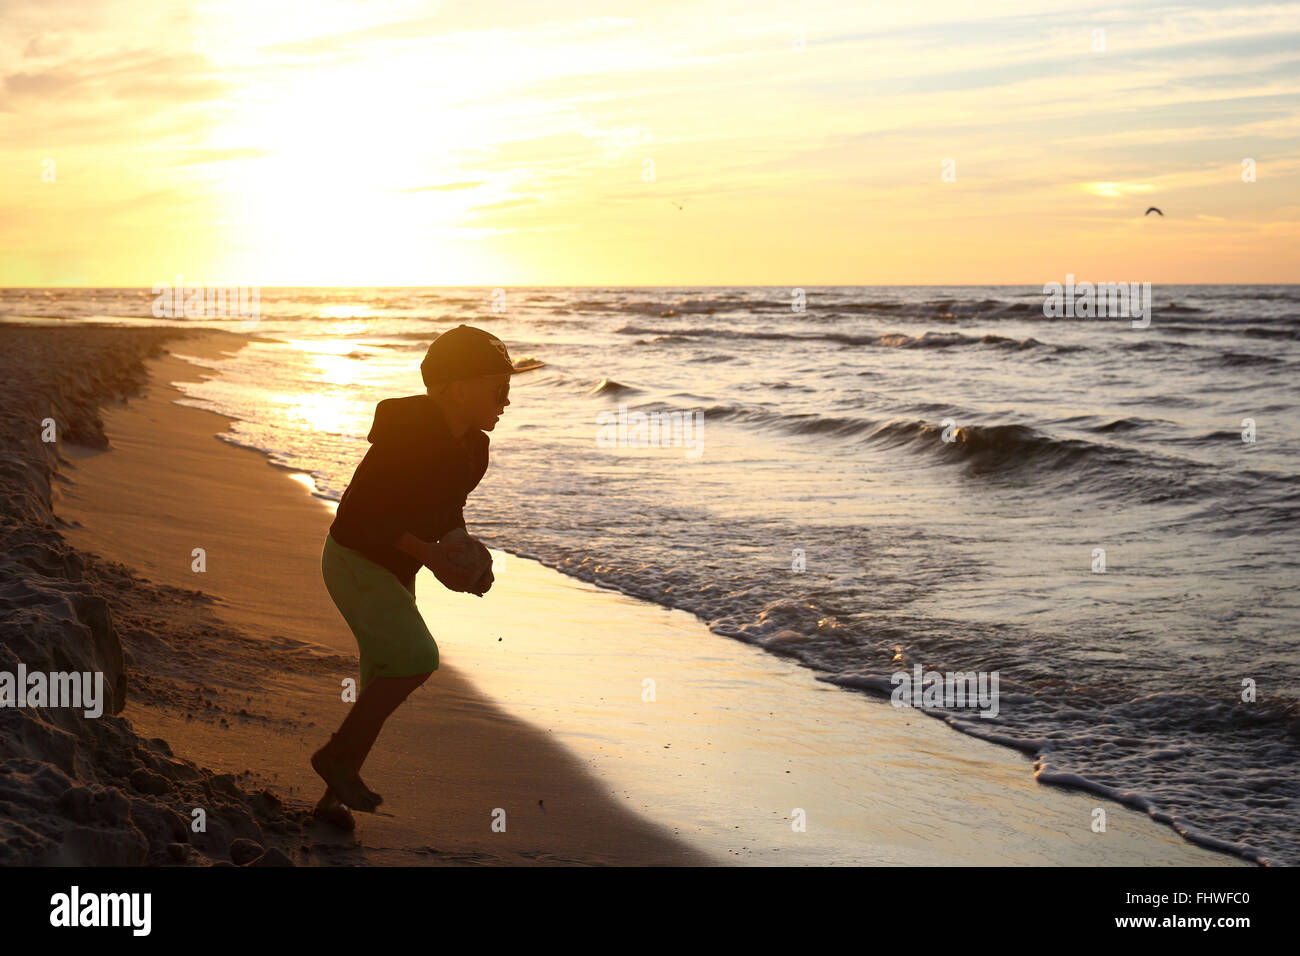 Sunset over the sea. Fun at sunset. Happy day. Walking on the beach, sunset - Stock Image